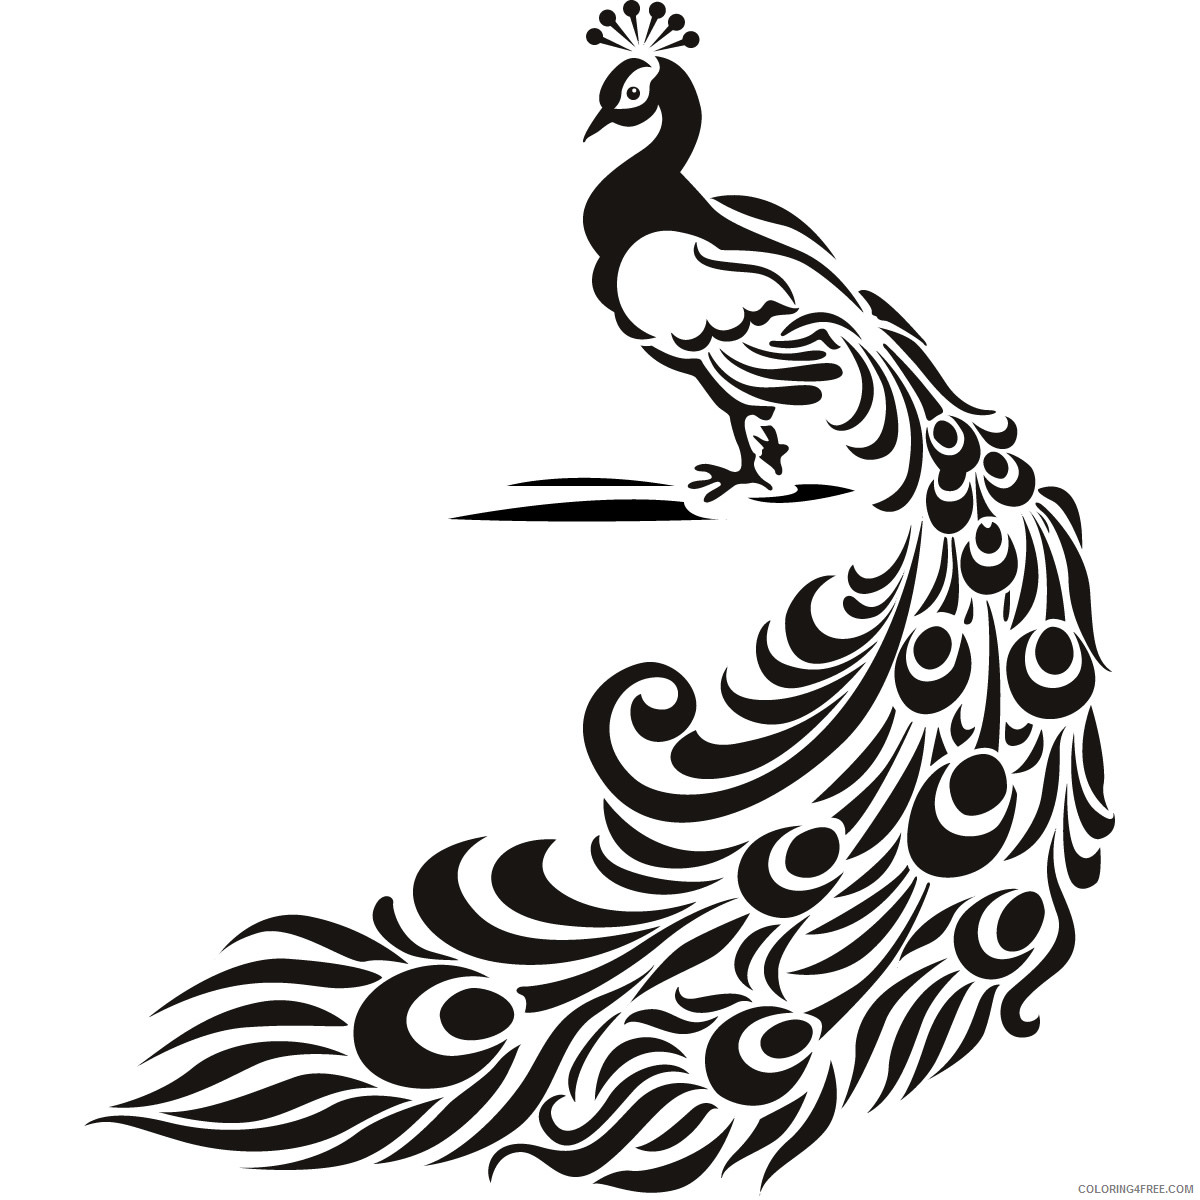 Bird Coloring Pages peacock bird animal wall art Printable Coloring4free